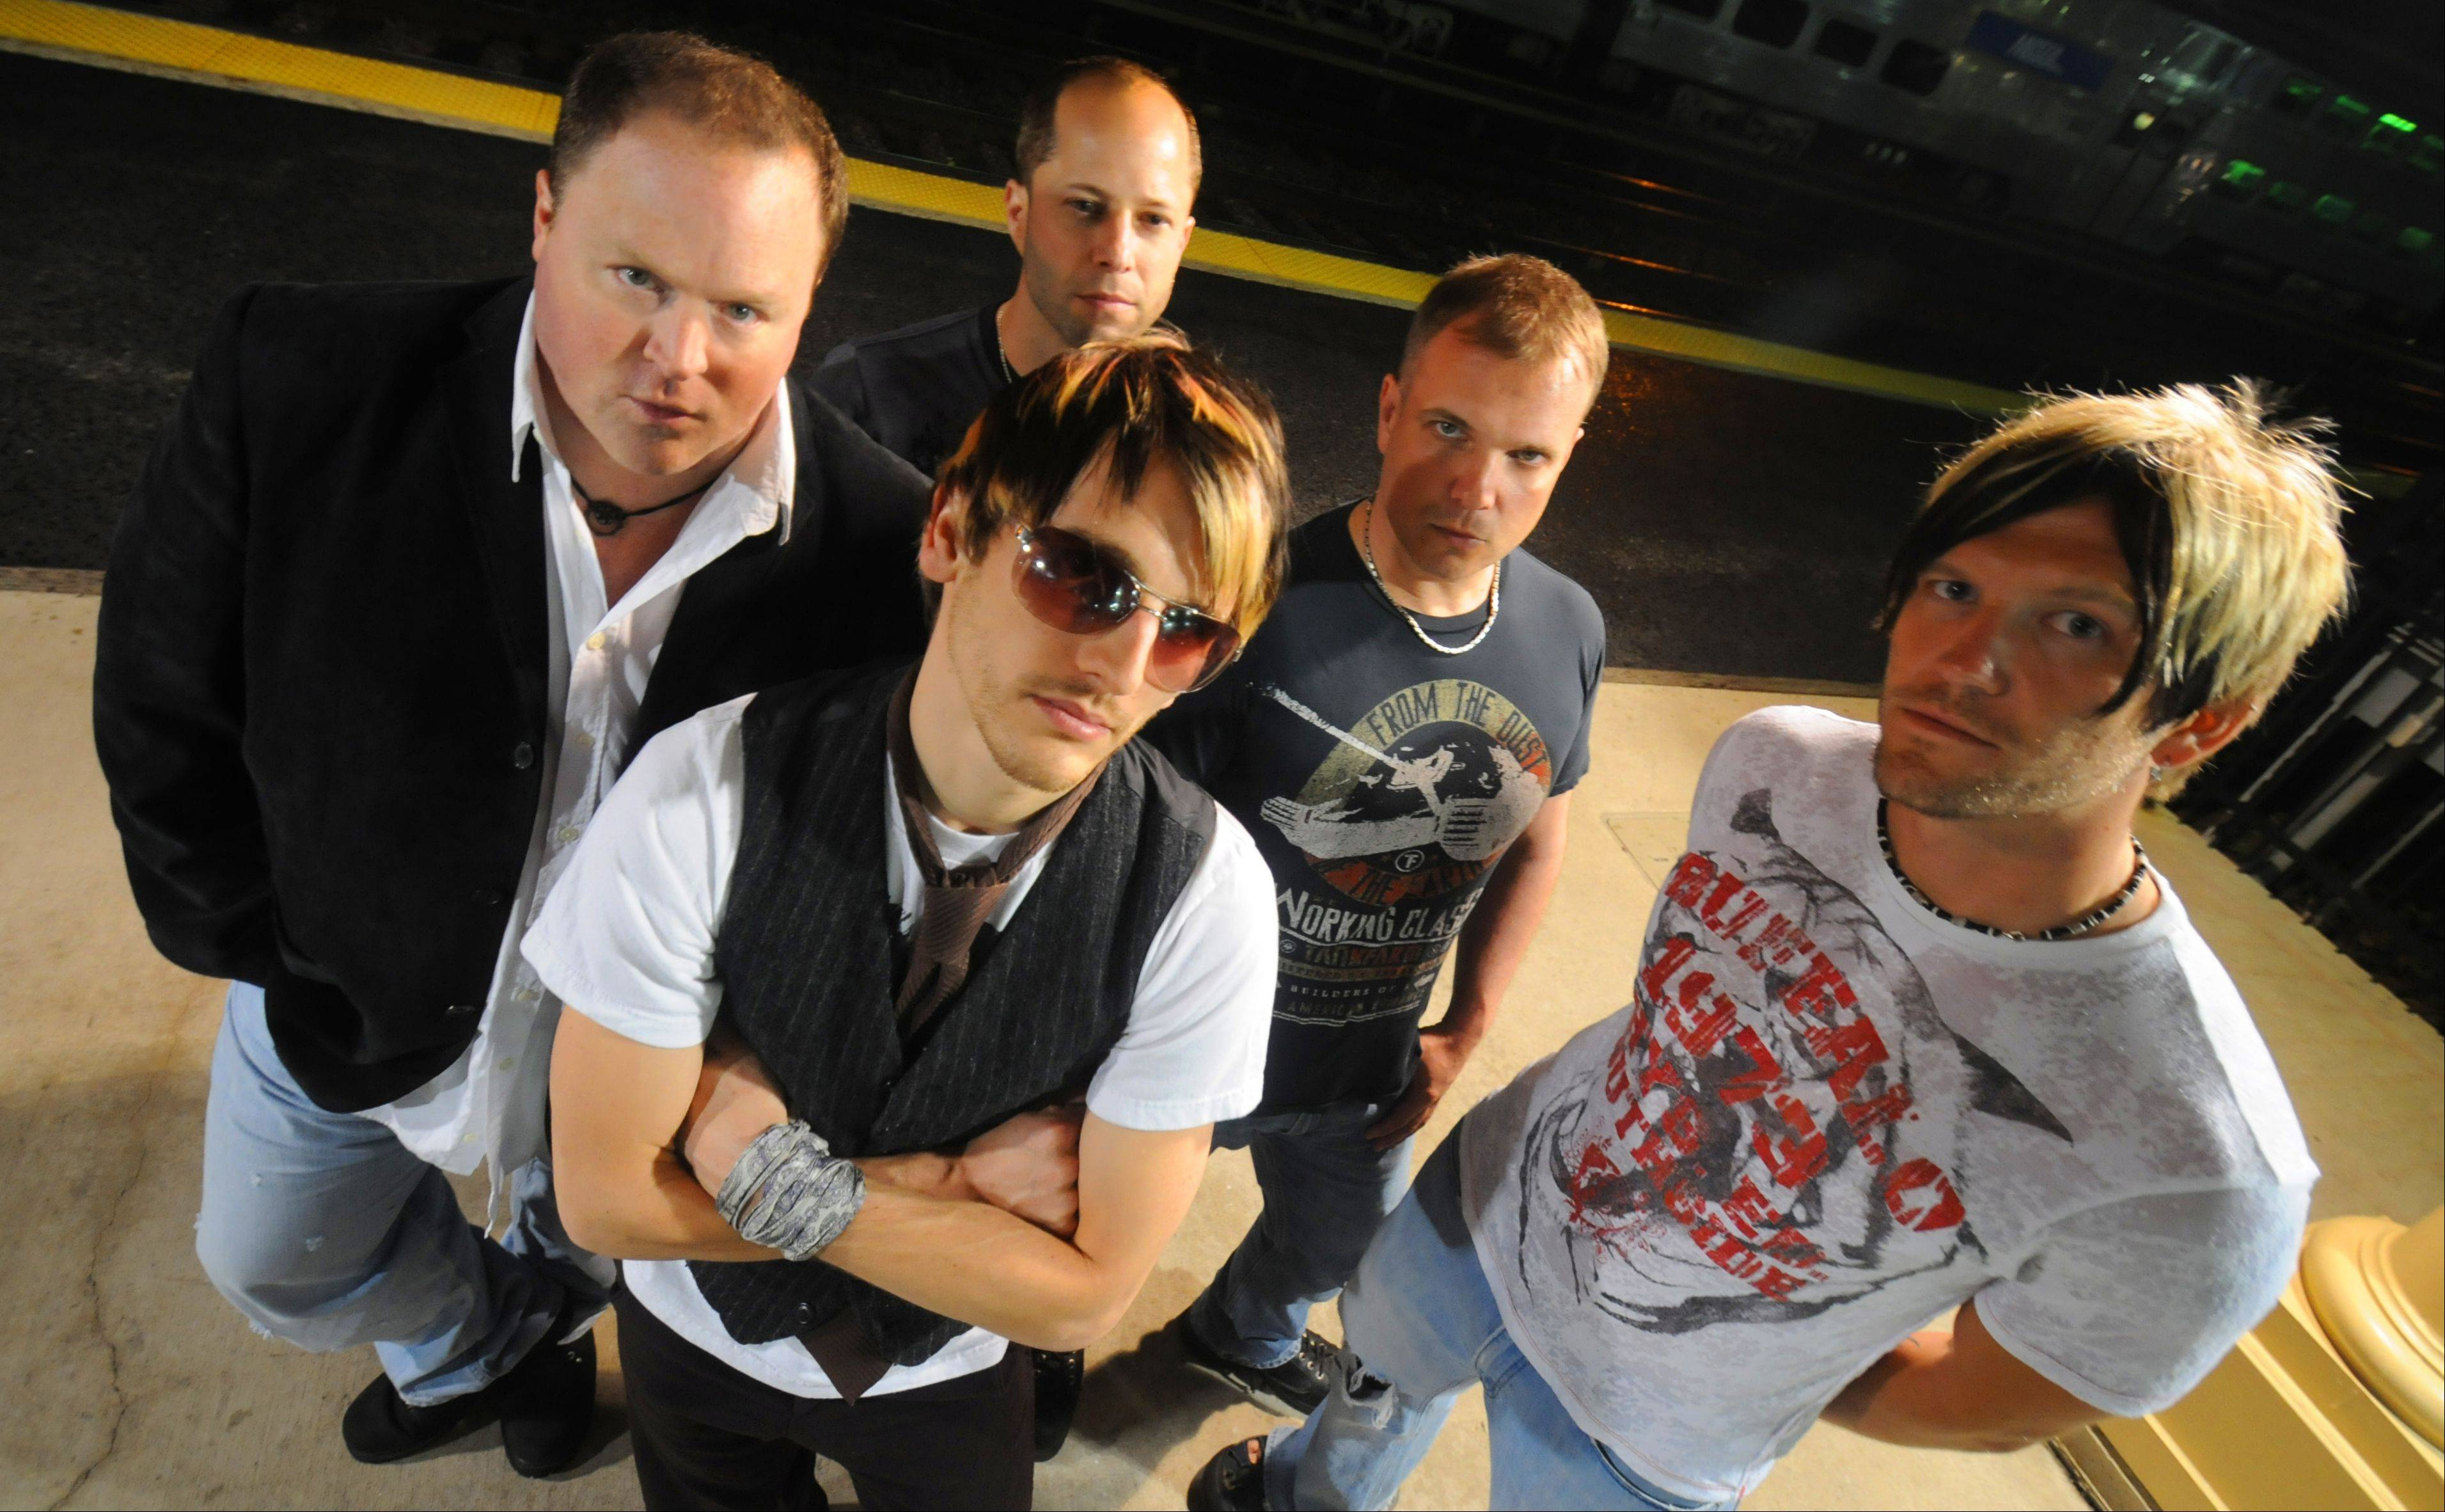 7th Heaven will perform as a main stage act at Schaumburg's Septemberfest at 7:30 p.m. Monday, Sept. 5.